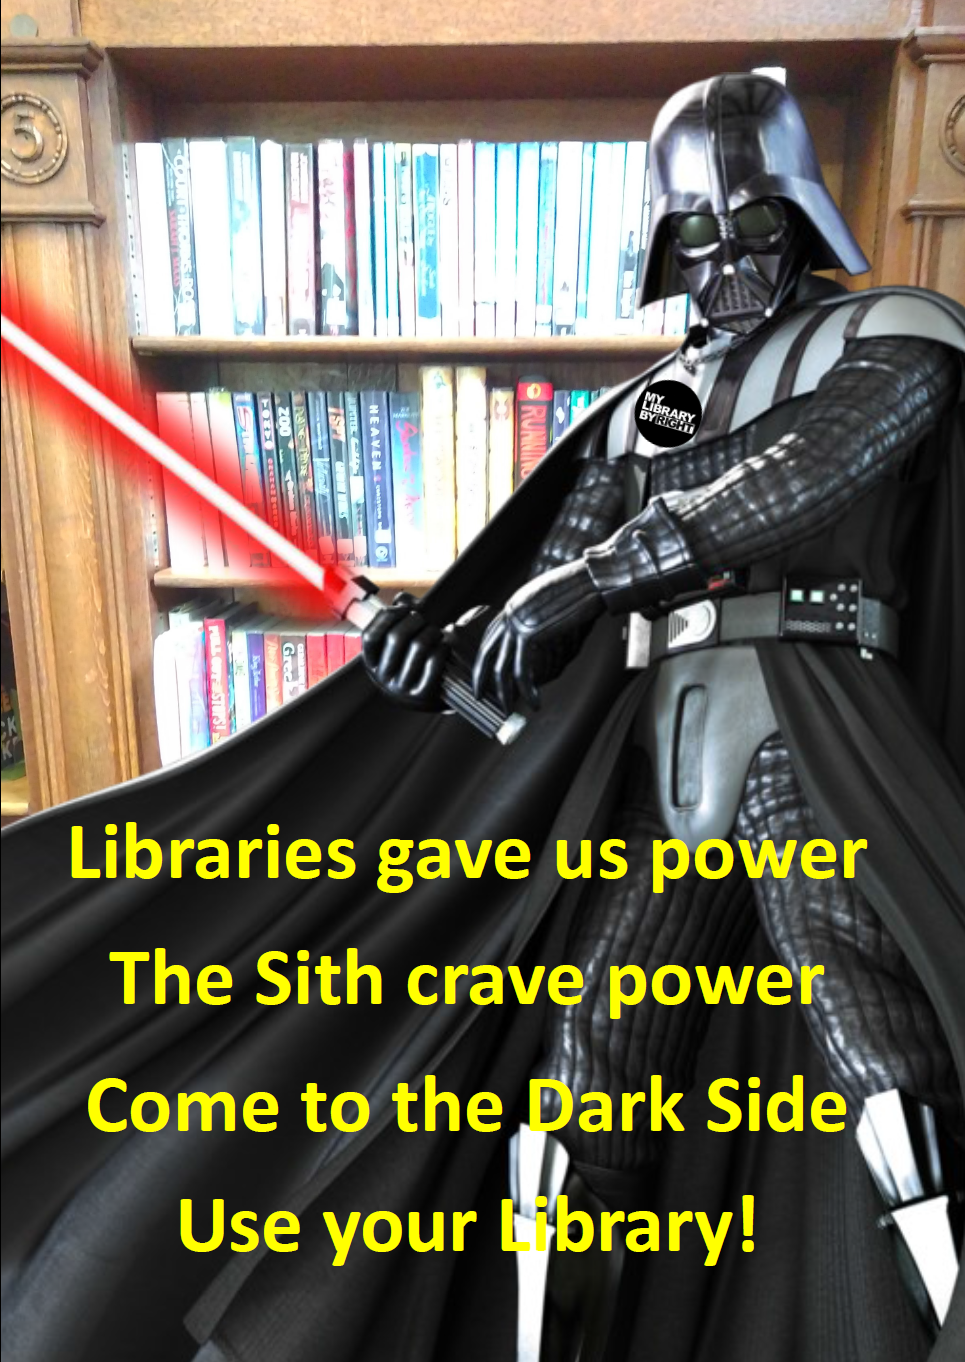 sith poster1.png